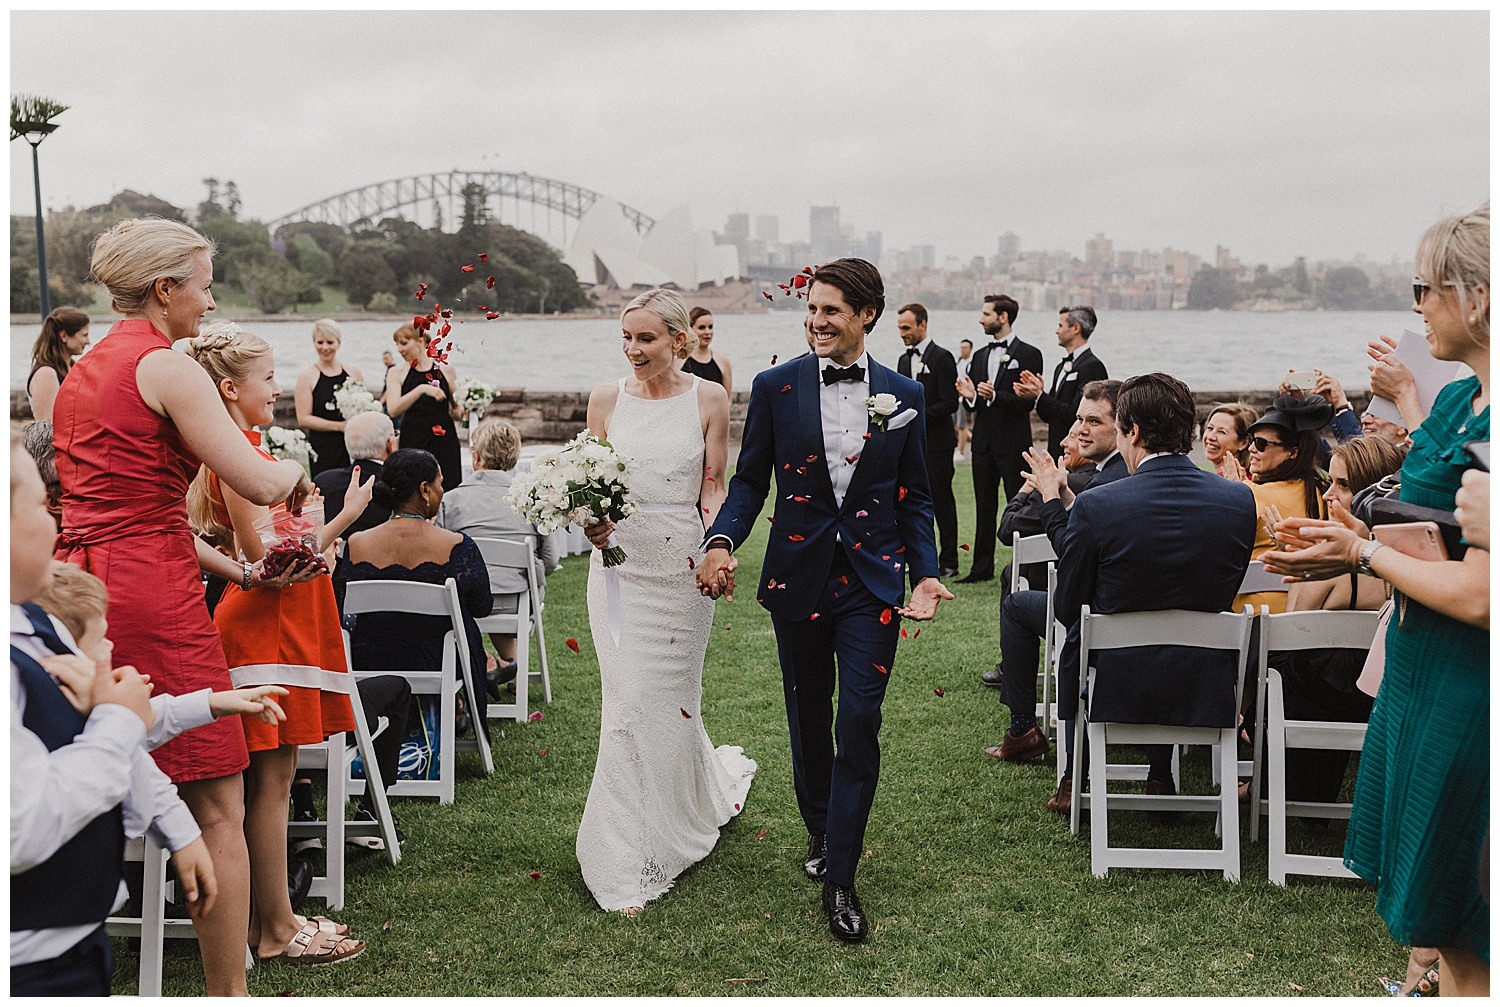 Couple announced as husband and wife at the Royal Botanic Gardens